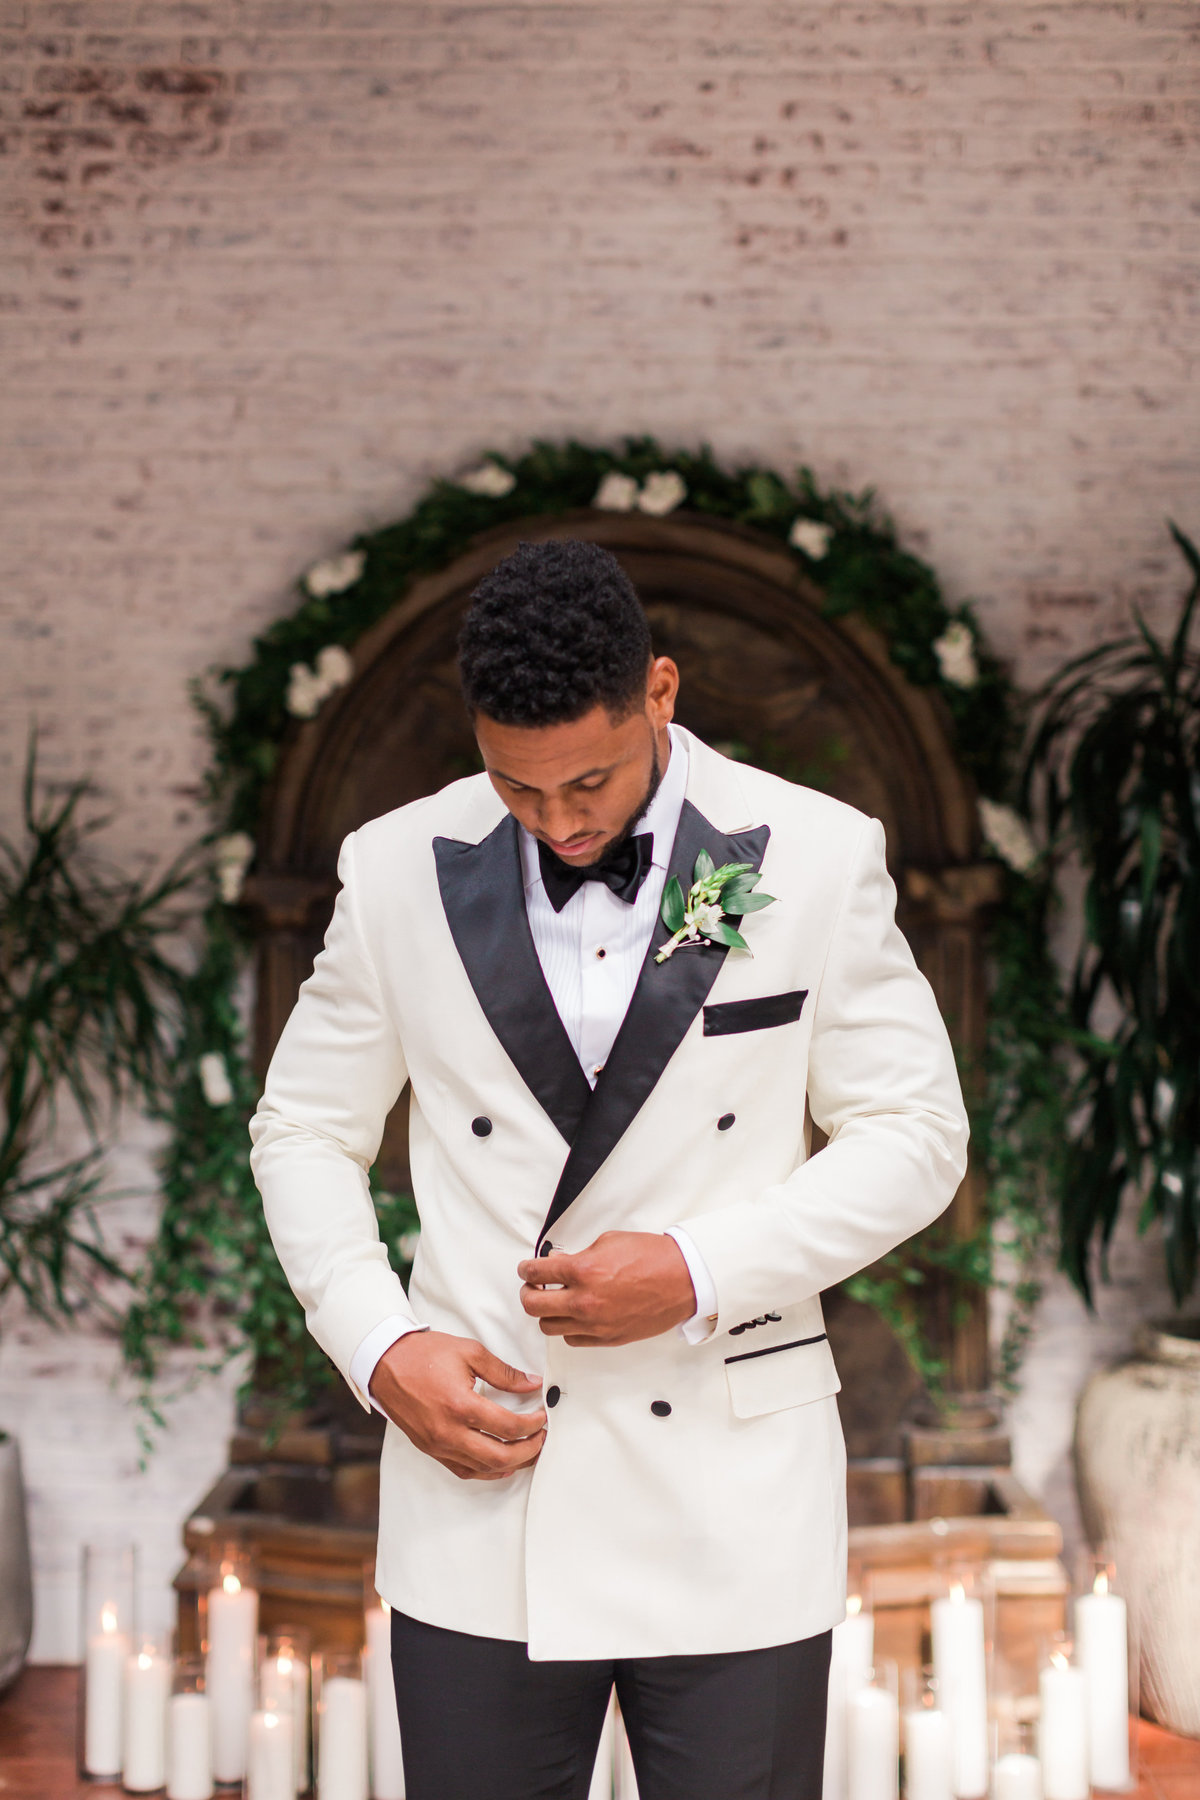 Ebell_Los_Angeles_Malcolm_Smith_NFL_Navy_Brass_Wedding_Valorie_Darling_Photography - 47 of 122